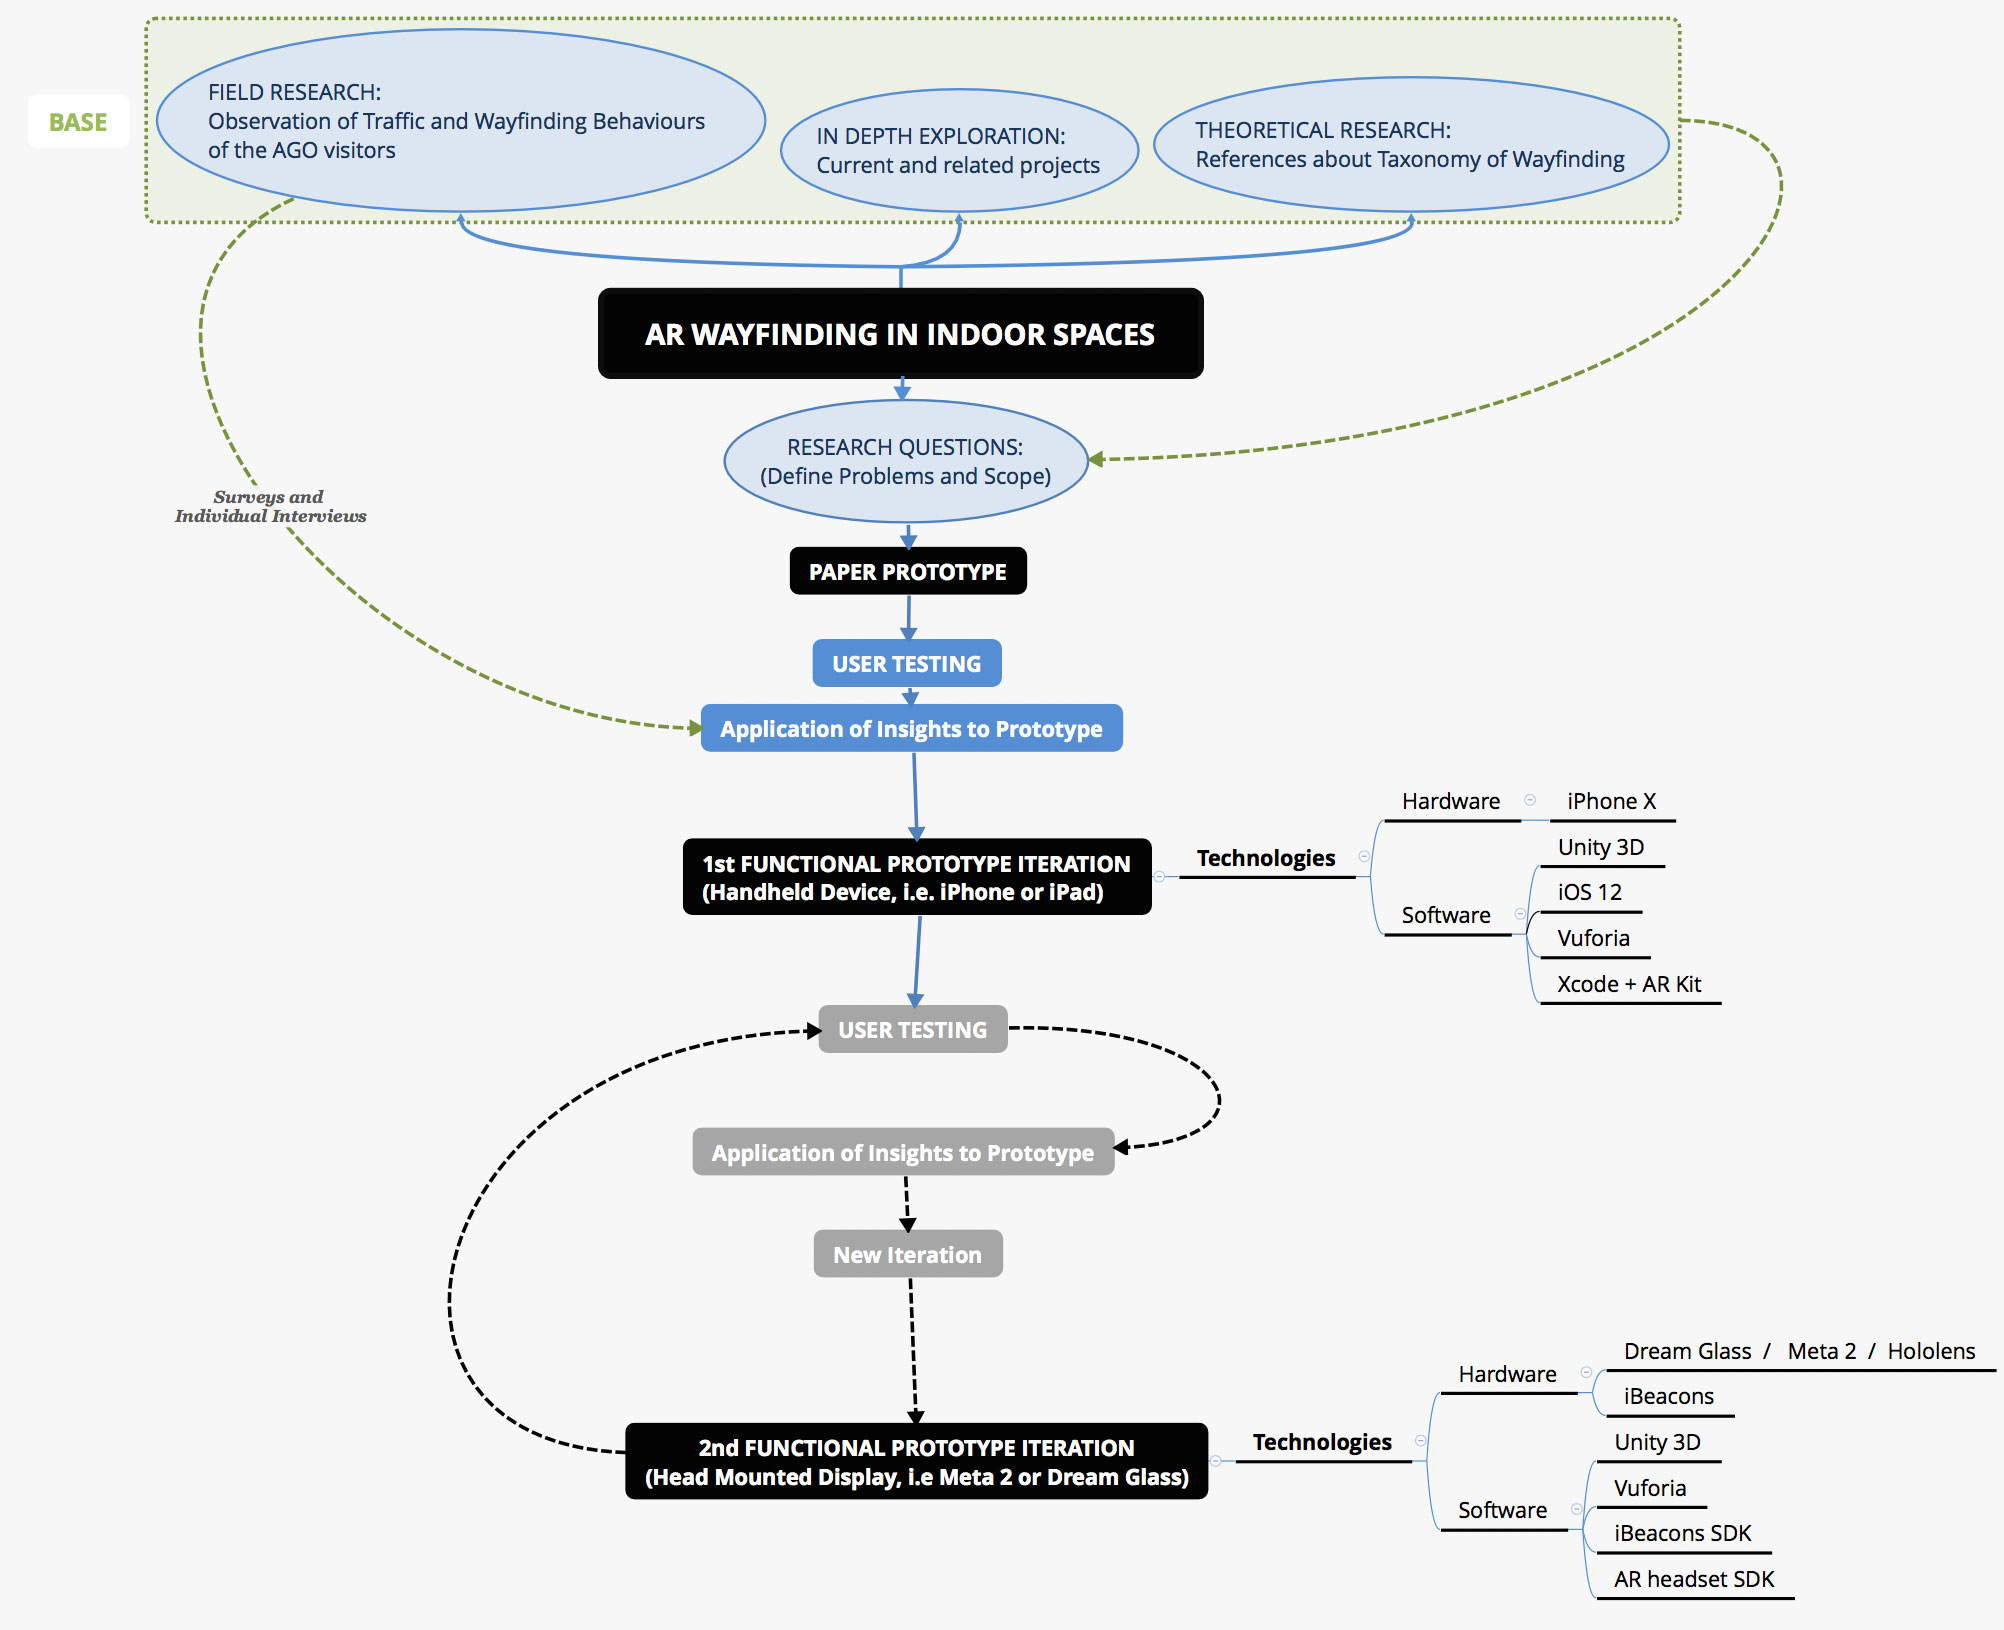 Mind mapping the process of the whole thesis project and research.